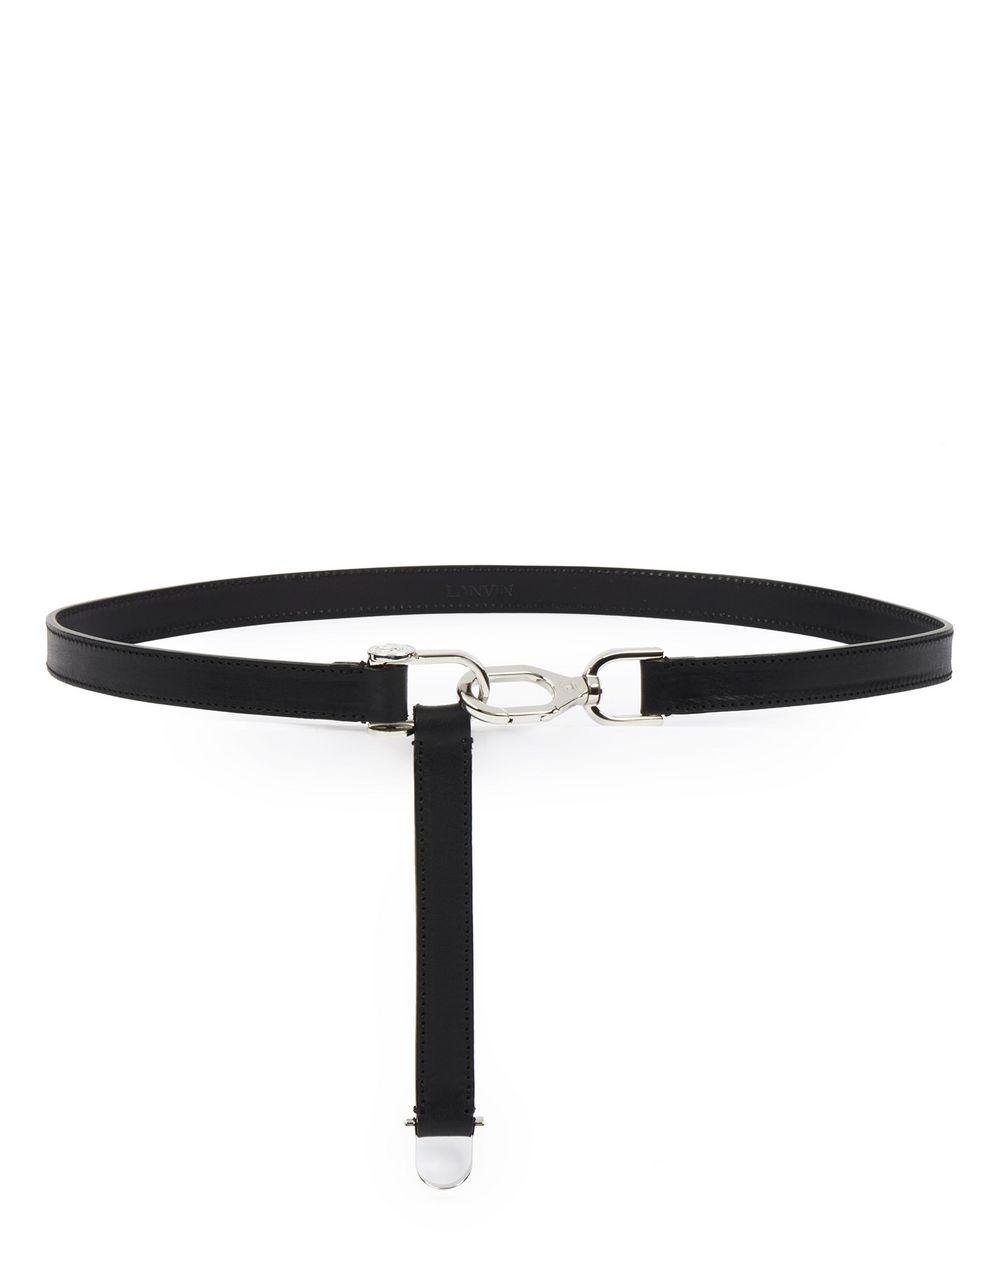 HOOK BELT - Lanvin